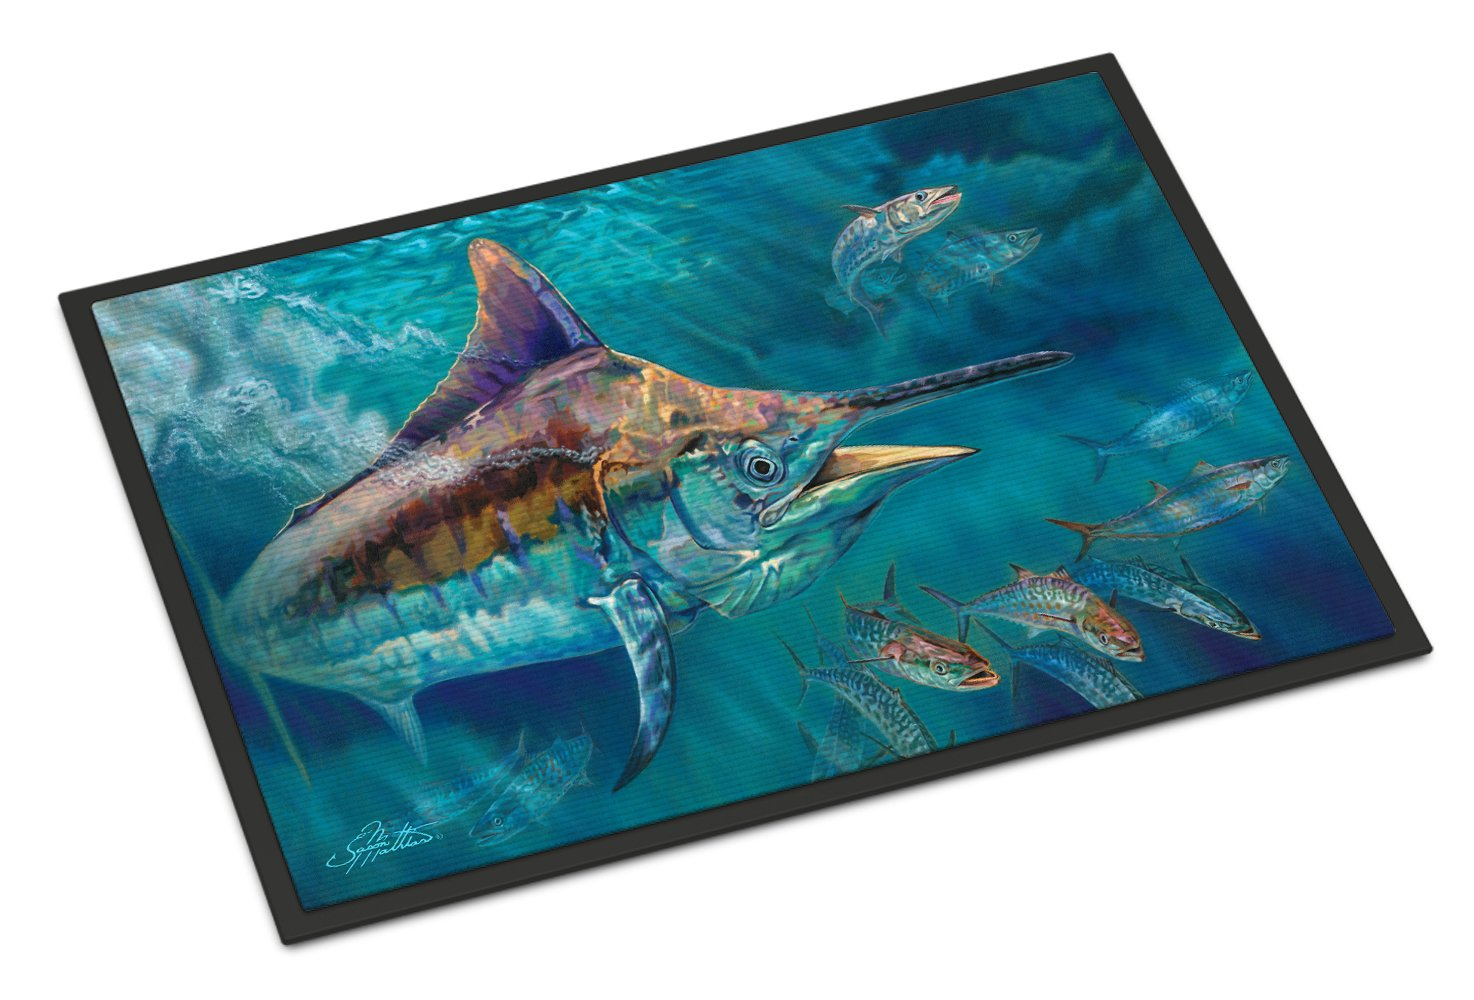 Liquid Metal Black Marlin Indoor or Outdoor Mat 24x36 JMA2005JMAT by Caroline's Treasures